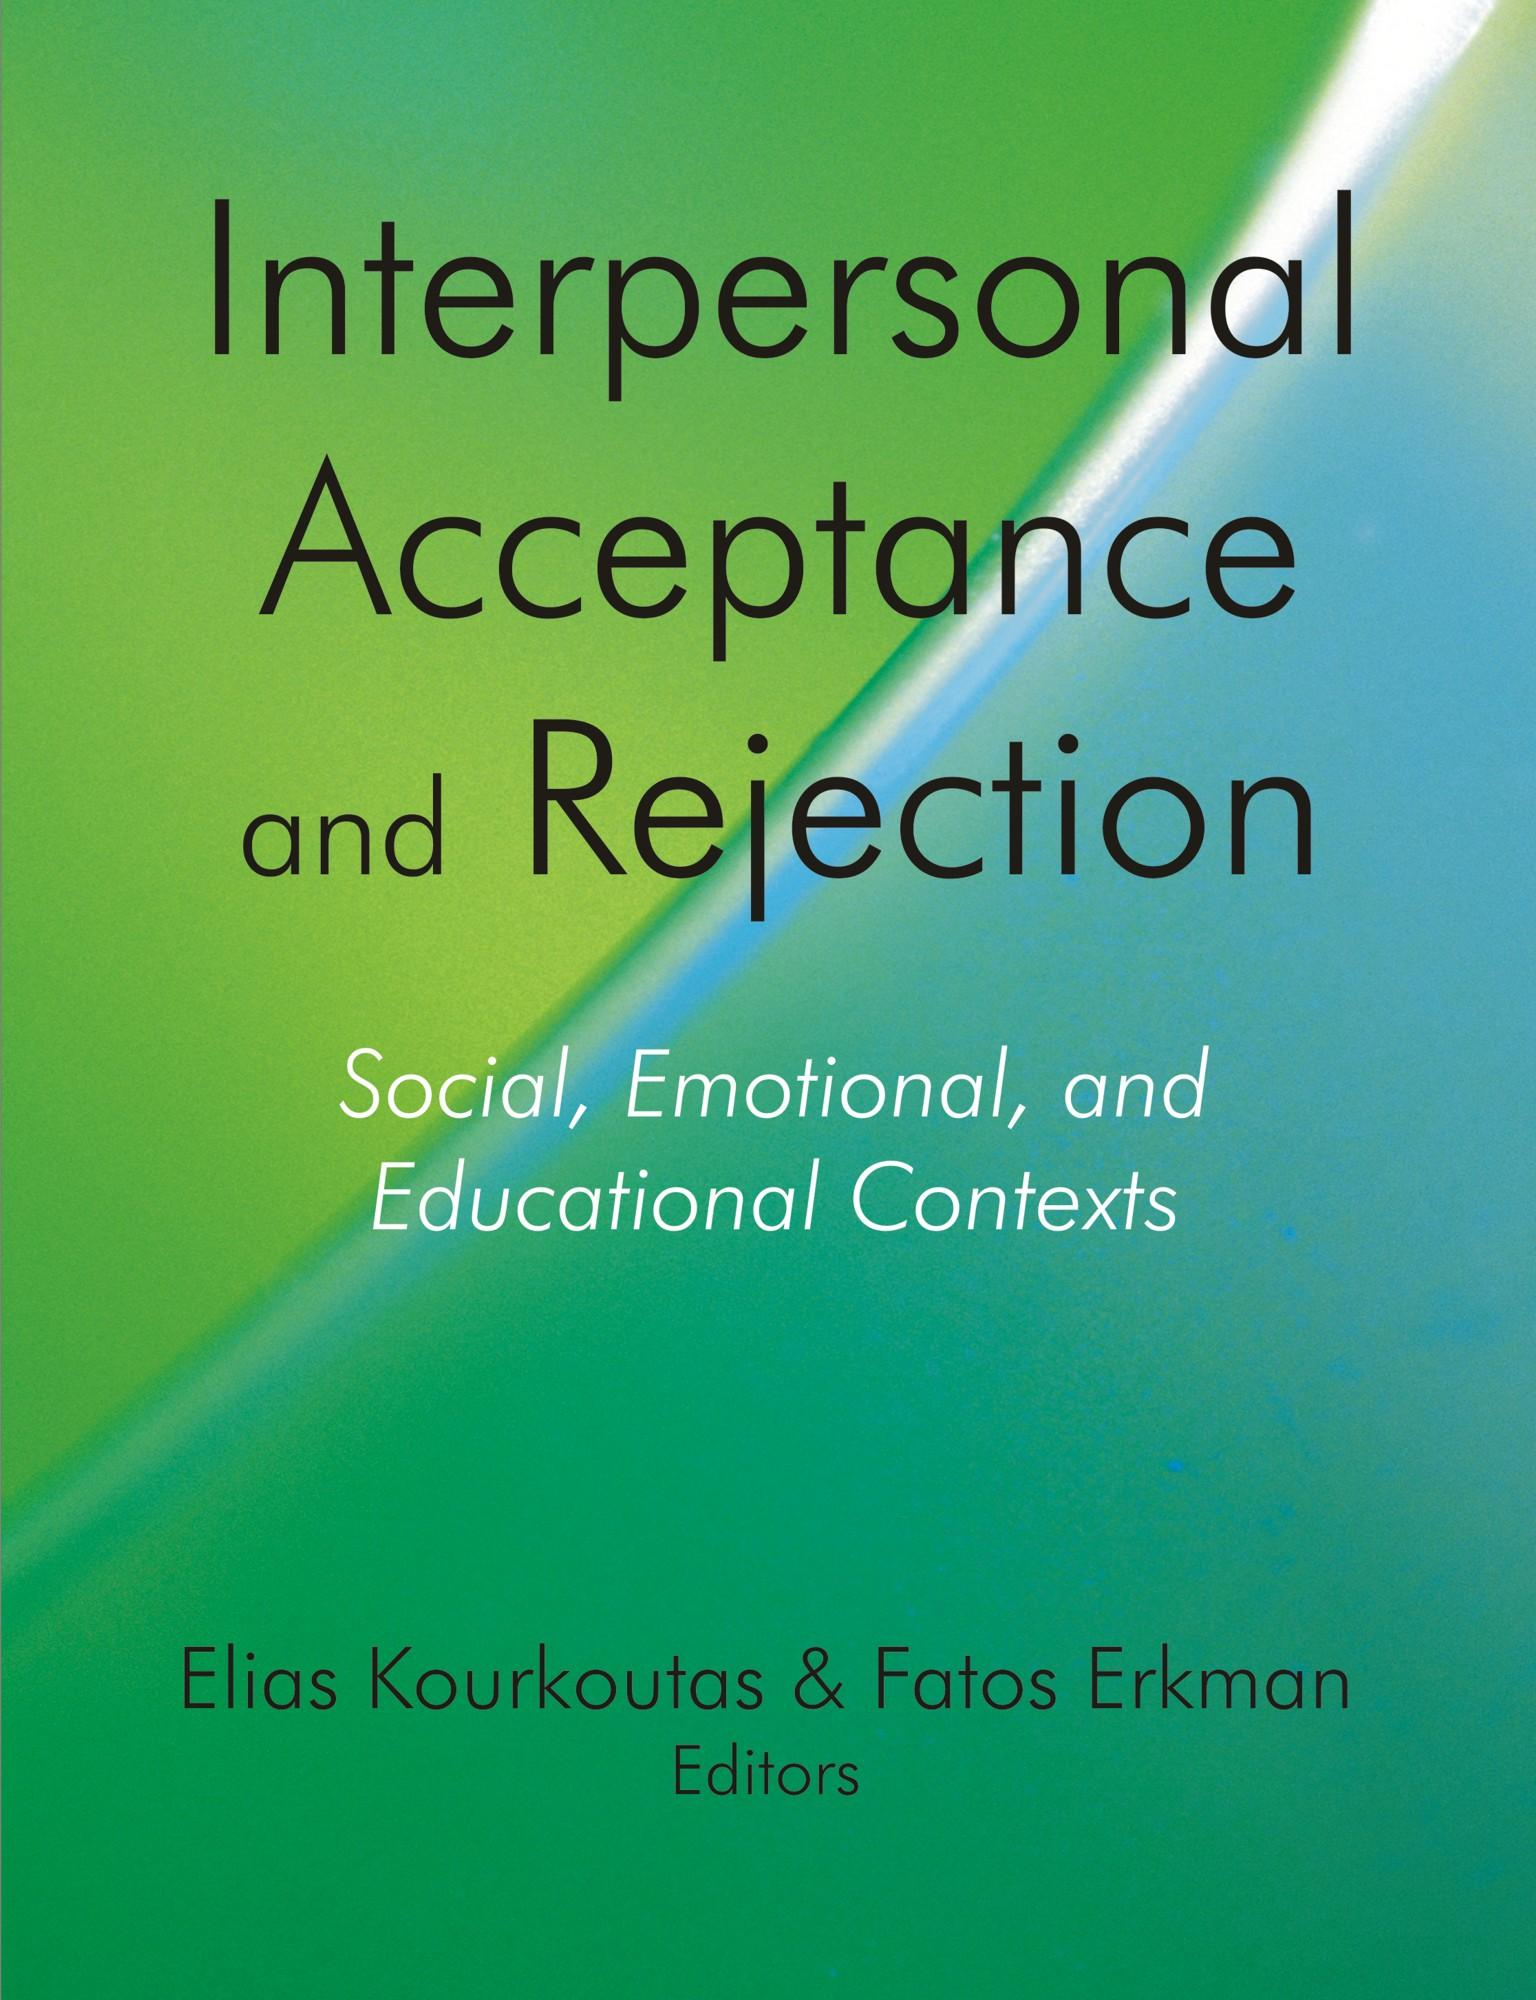 Interpersonal Acceptance and Rejection: Social, Emotional, and Educational Contexts EB9781599425702